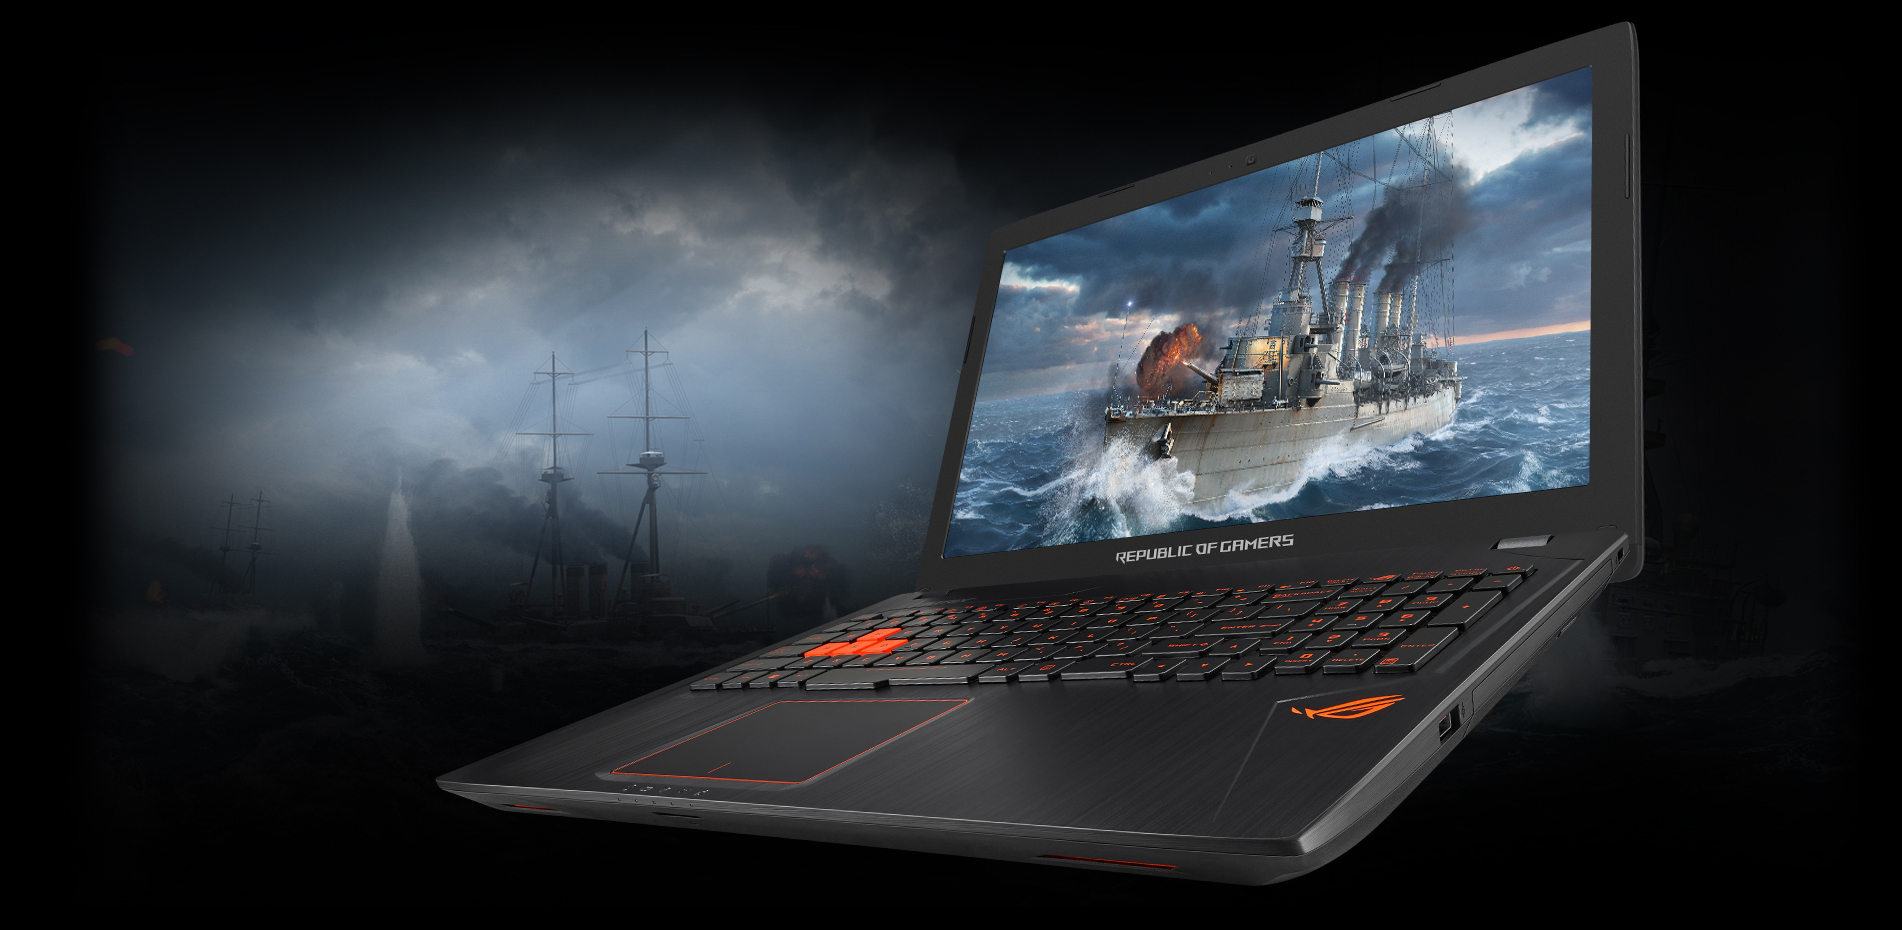 ASUS ROG STRIX GL553VW review